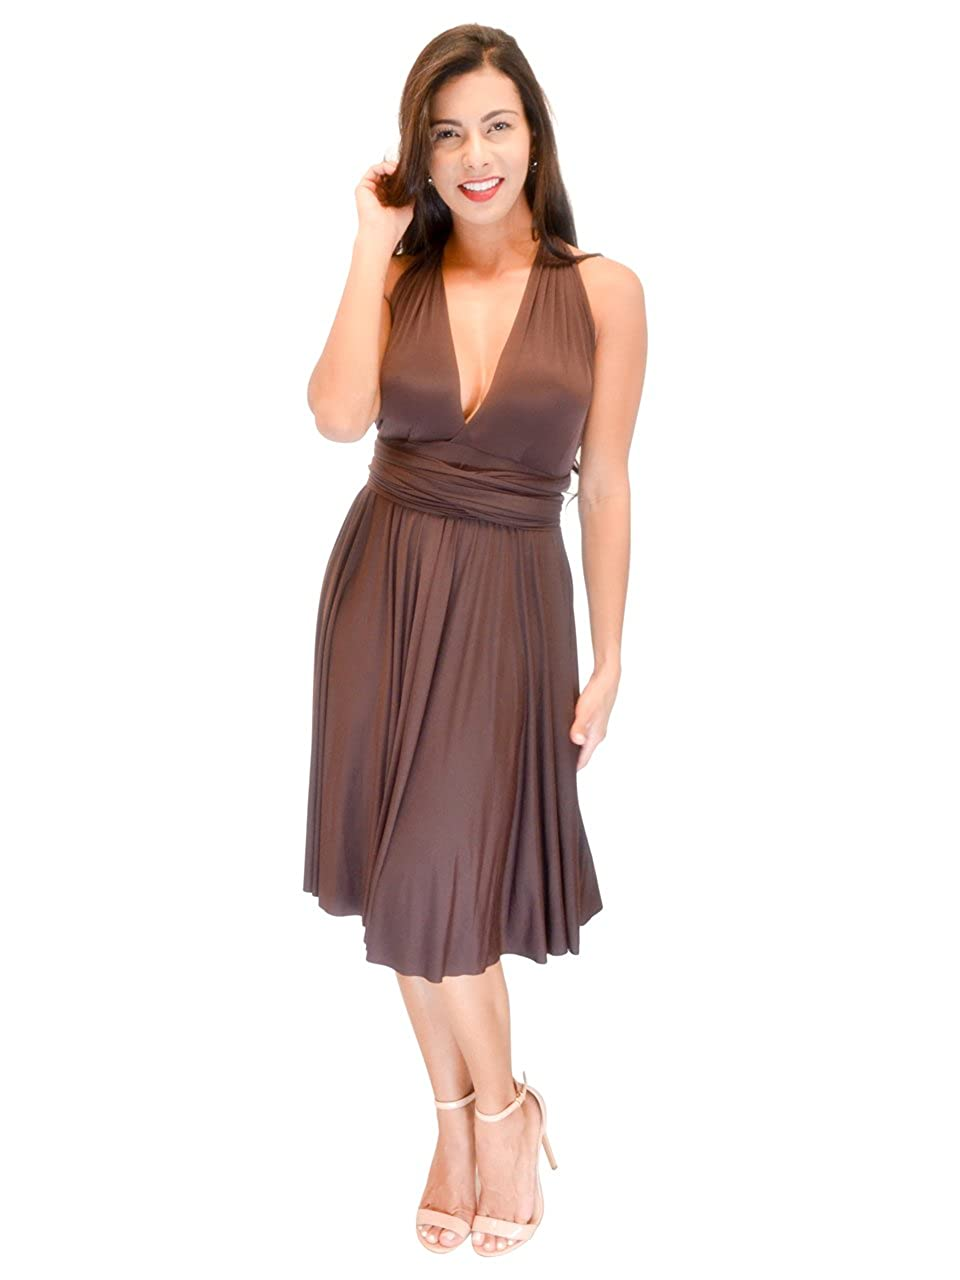 Vivian's Fashions Dress - Twist Wrap, 8 Ways to Wear (Misses and Misses Plus) VF Manufacturing VF5000